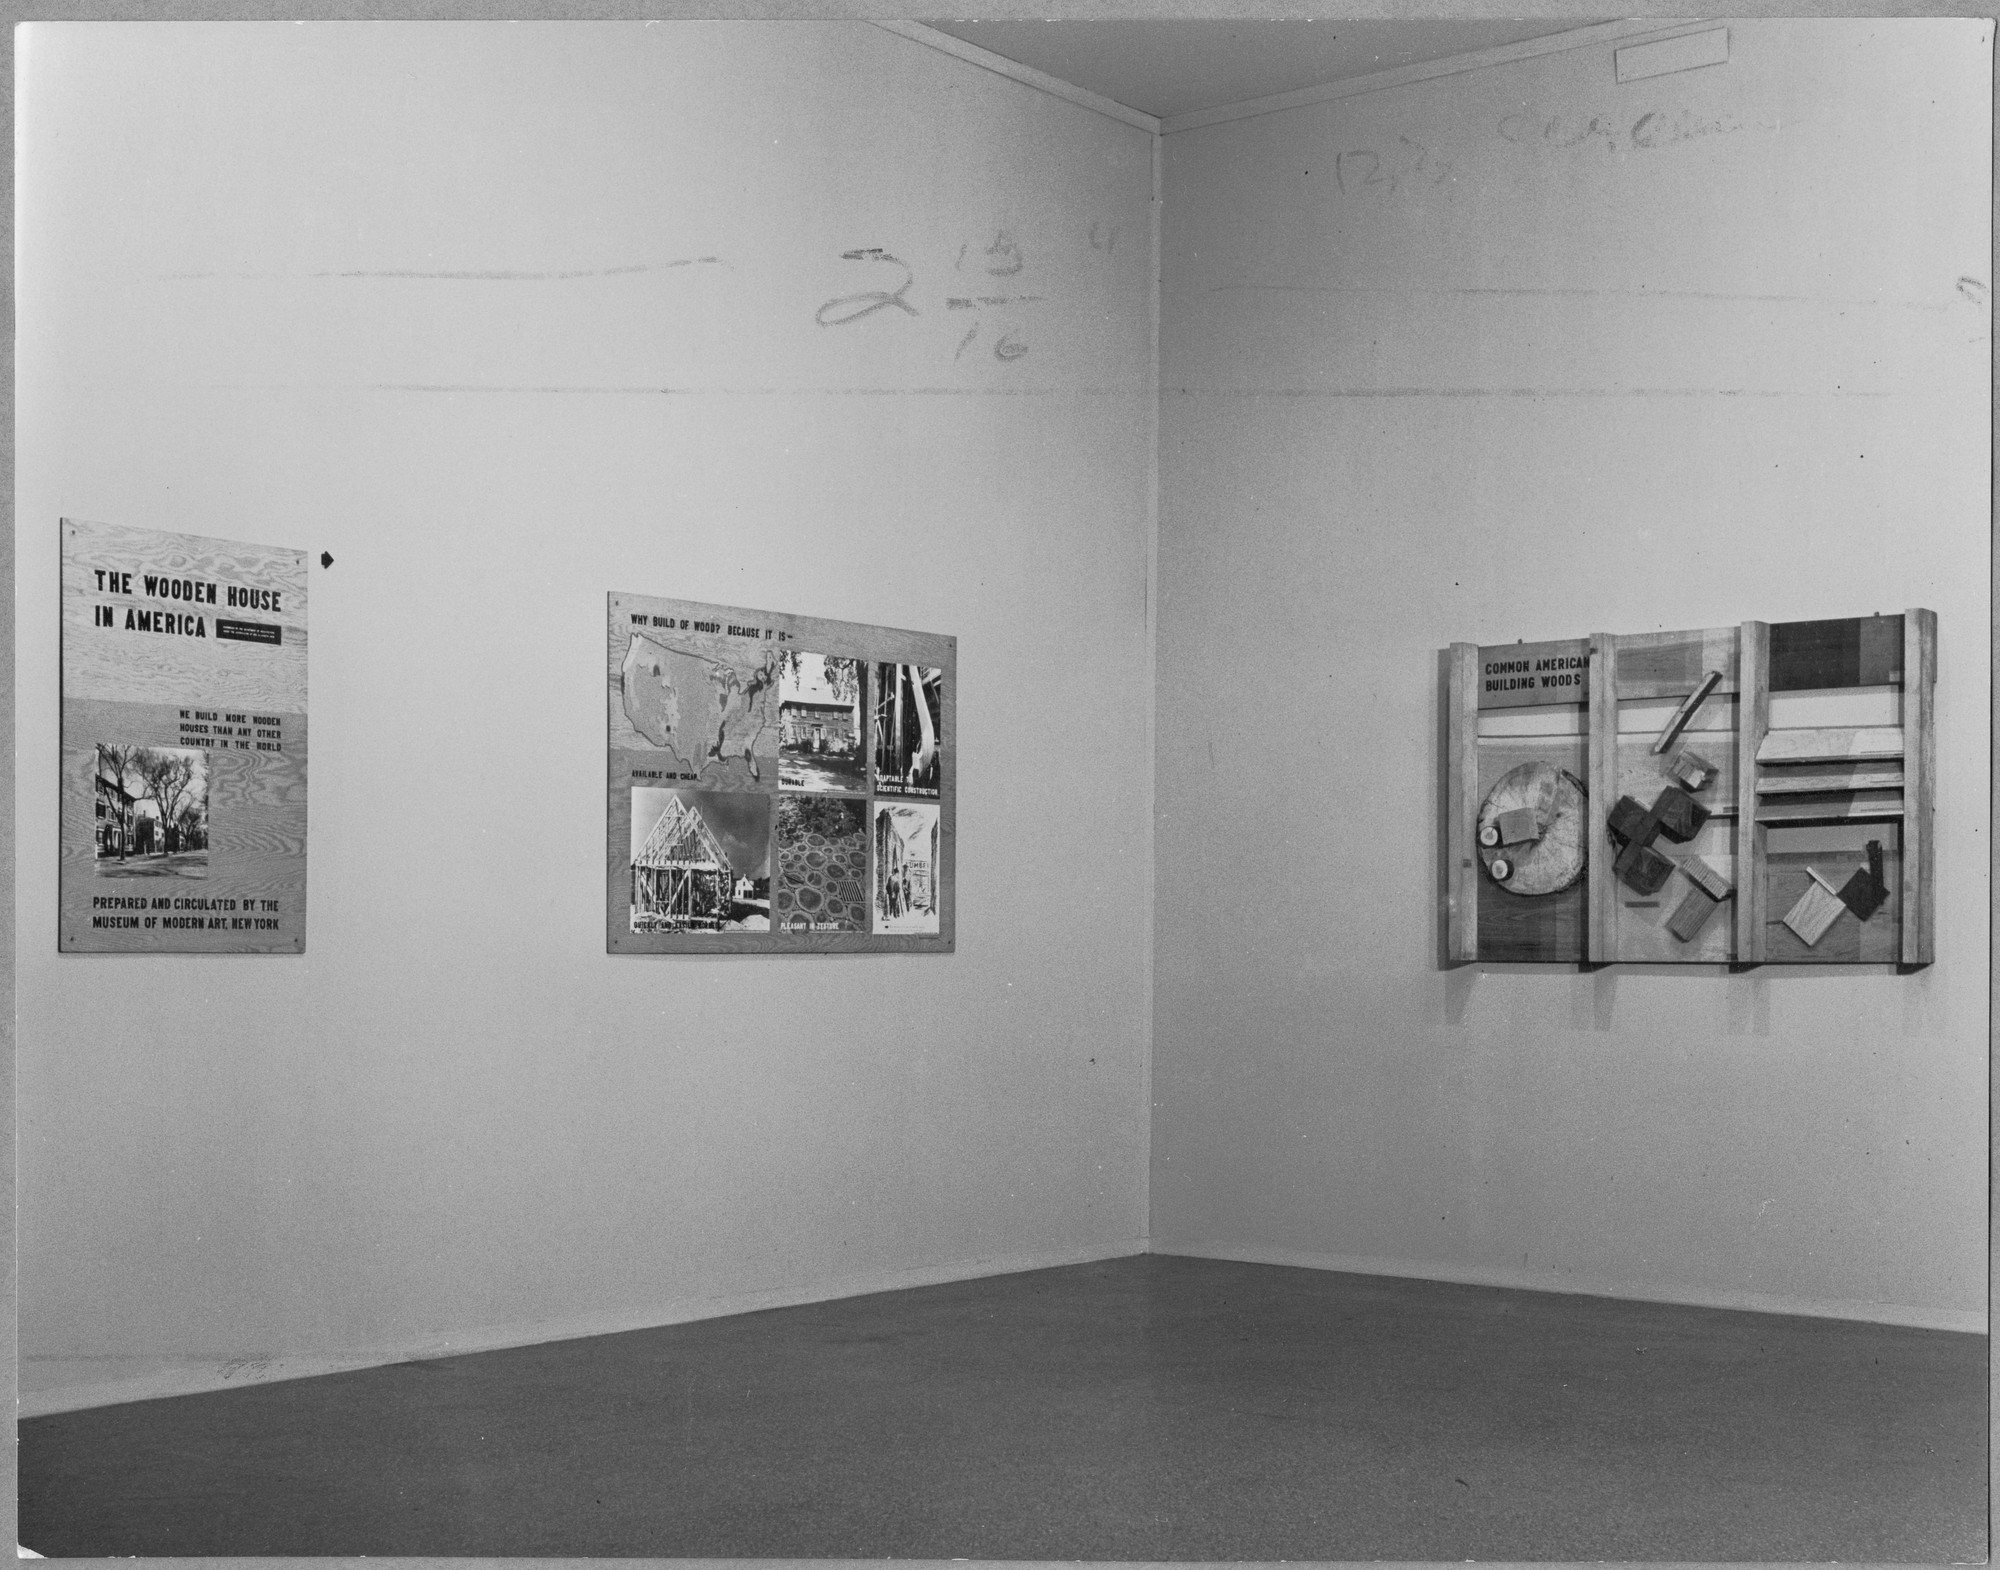 "Installation view of the exhibition, ""The Wooden House in America"" September 9, 1941–September 30, 1941. Photographic Archive. The Museum of Modern Art Archives, New York. IN146.1. Photograph by Molly Noyes."